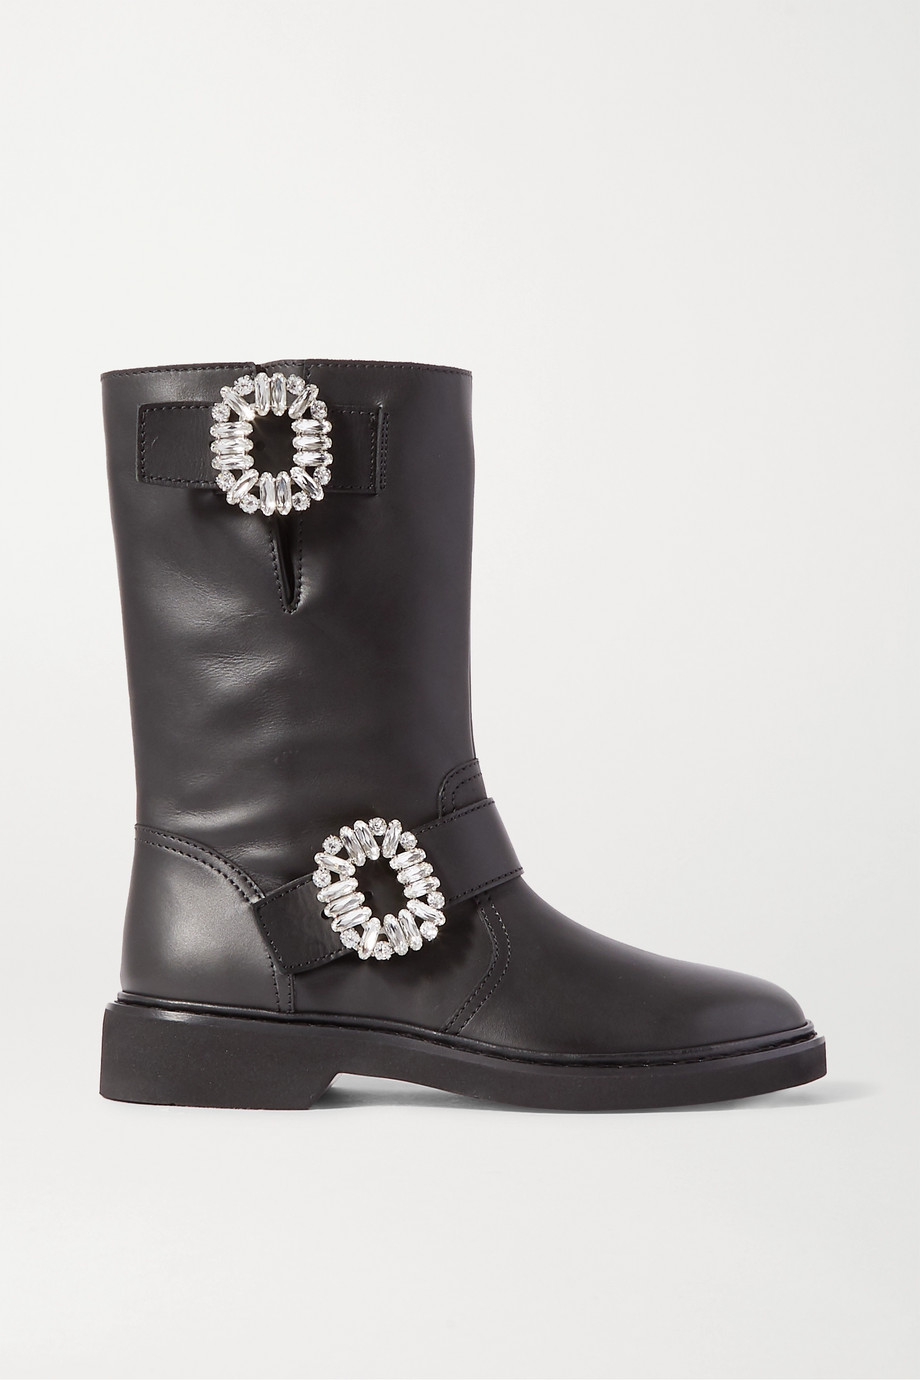 Roger Vivier Viv crystal-embellished leather boots